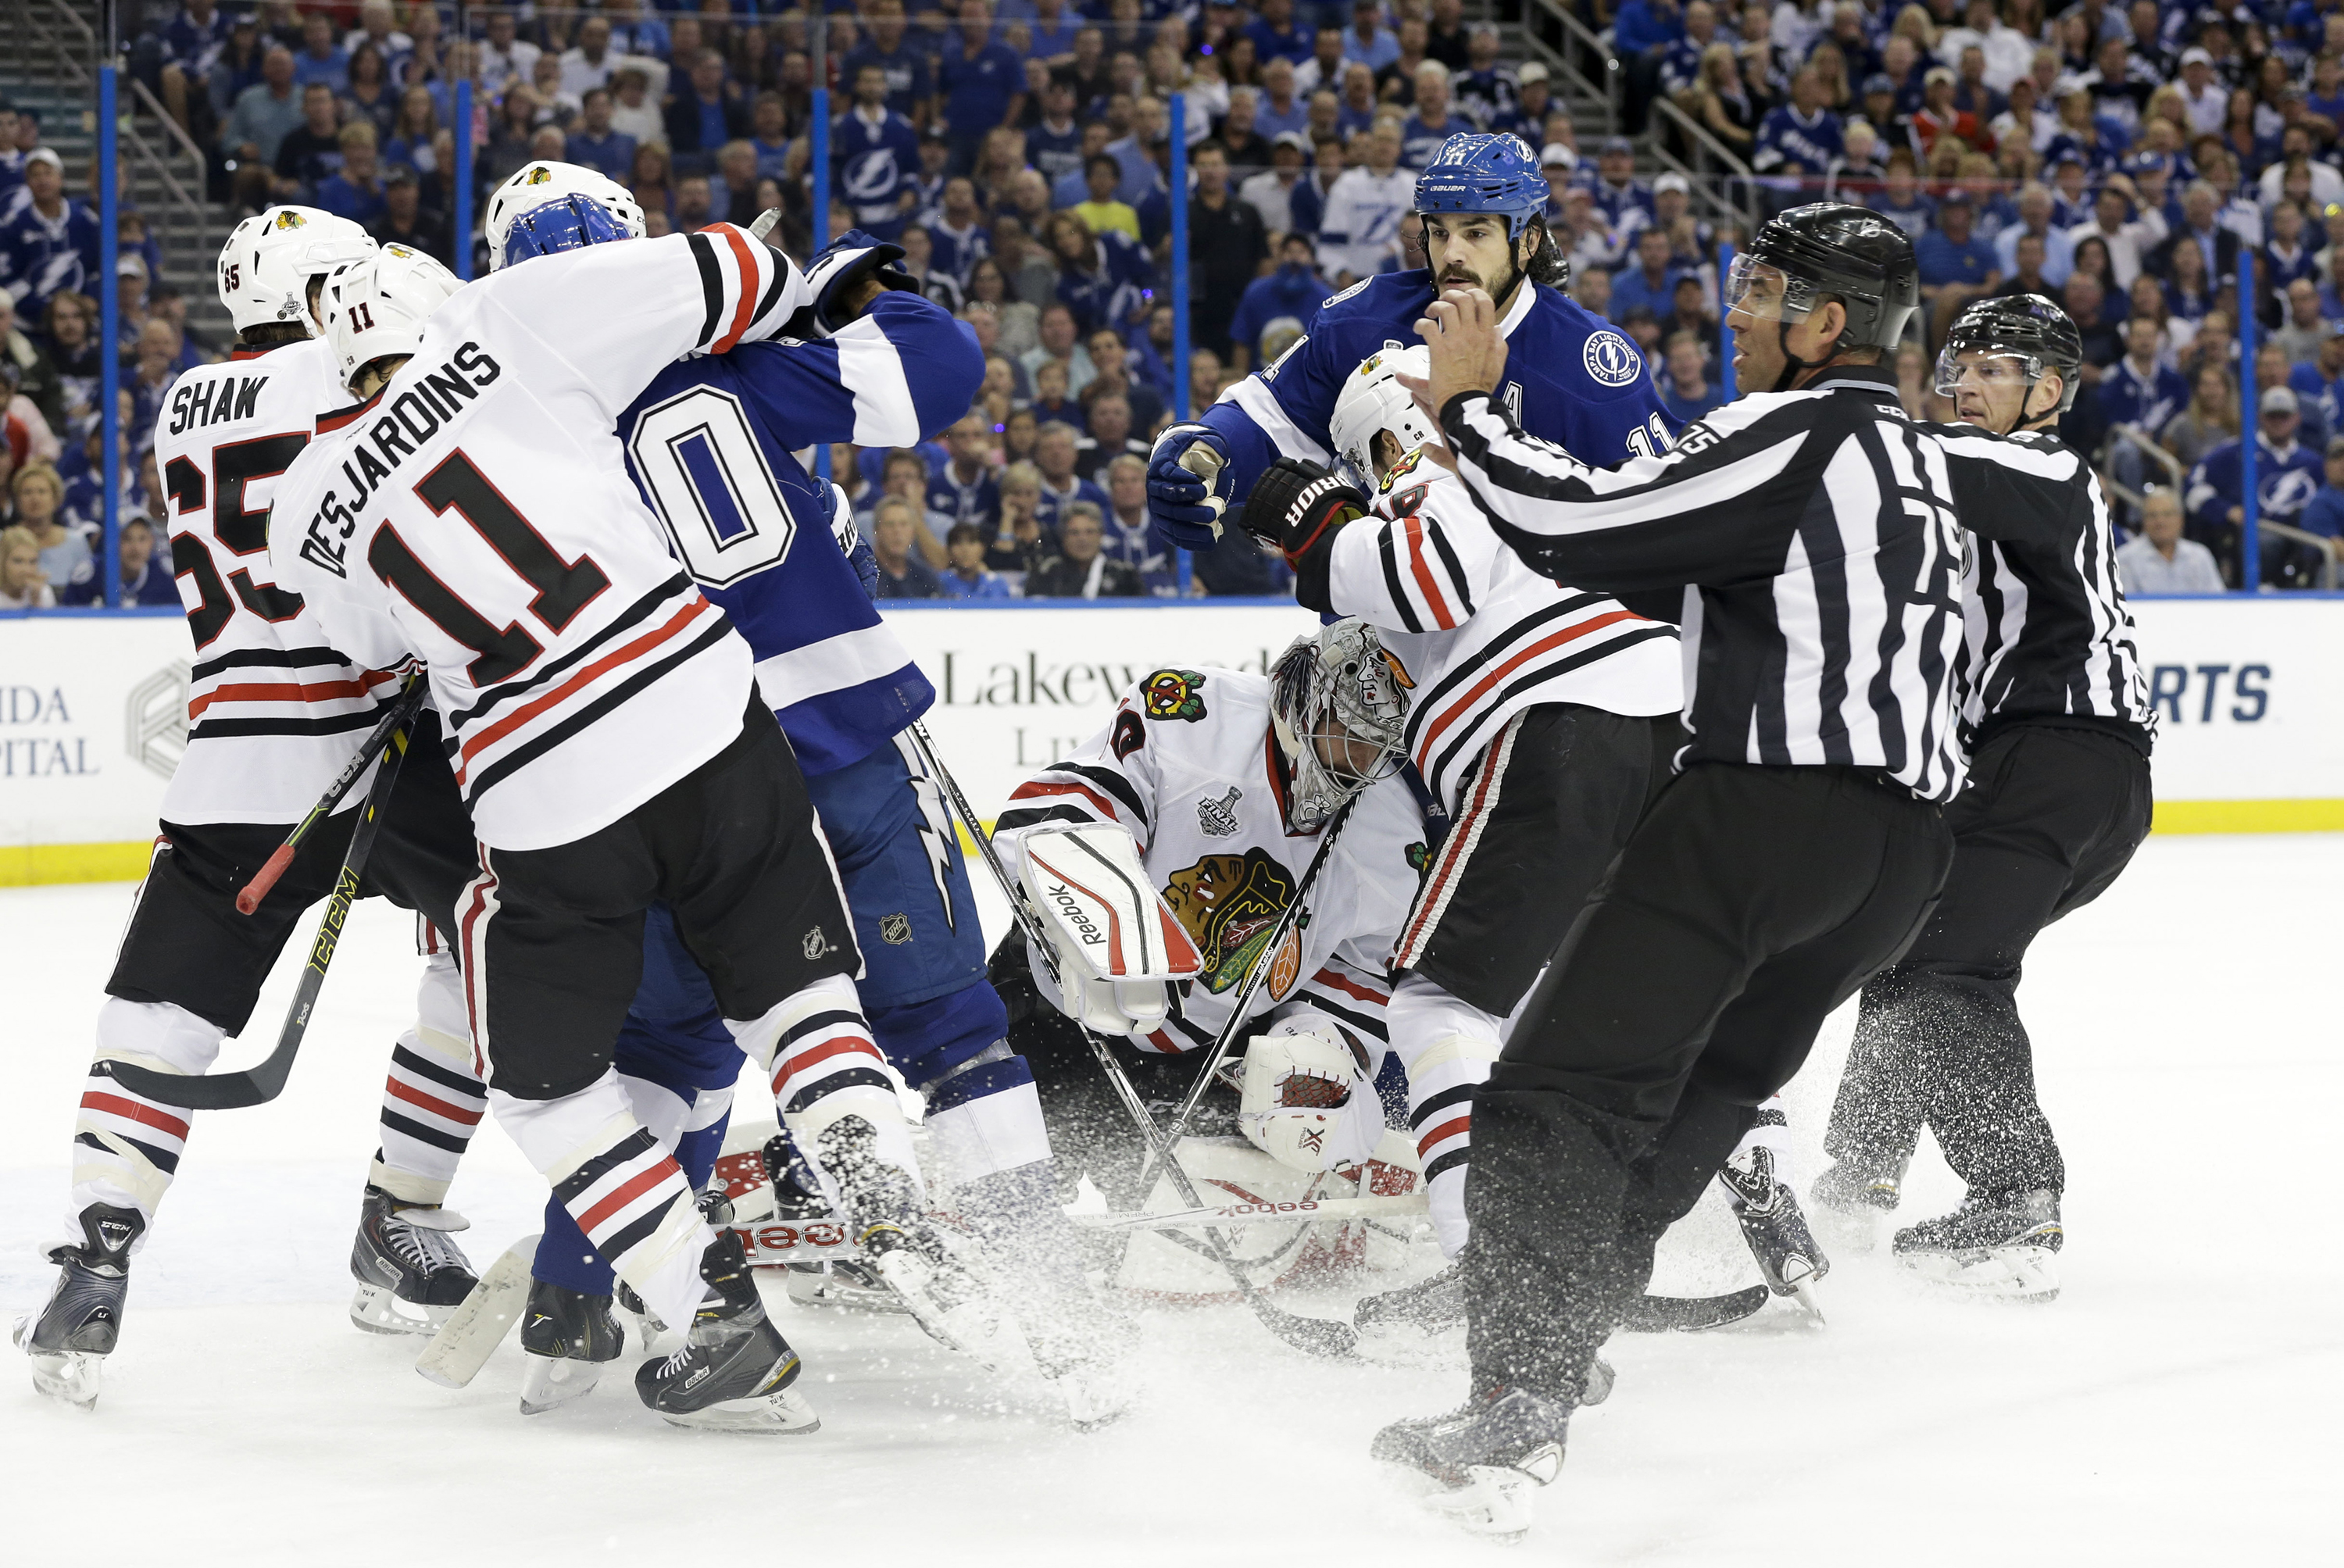 Referees beak up a scrum between the Lightning and Blackhawks during the first period of Game One in Tampa Wednesday.